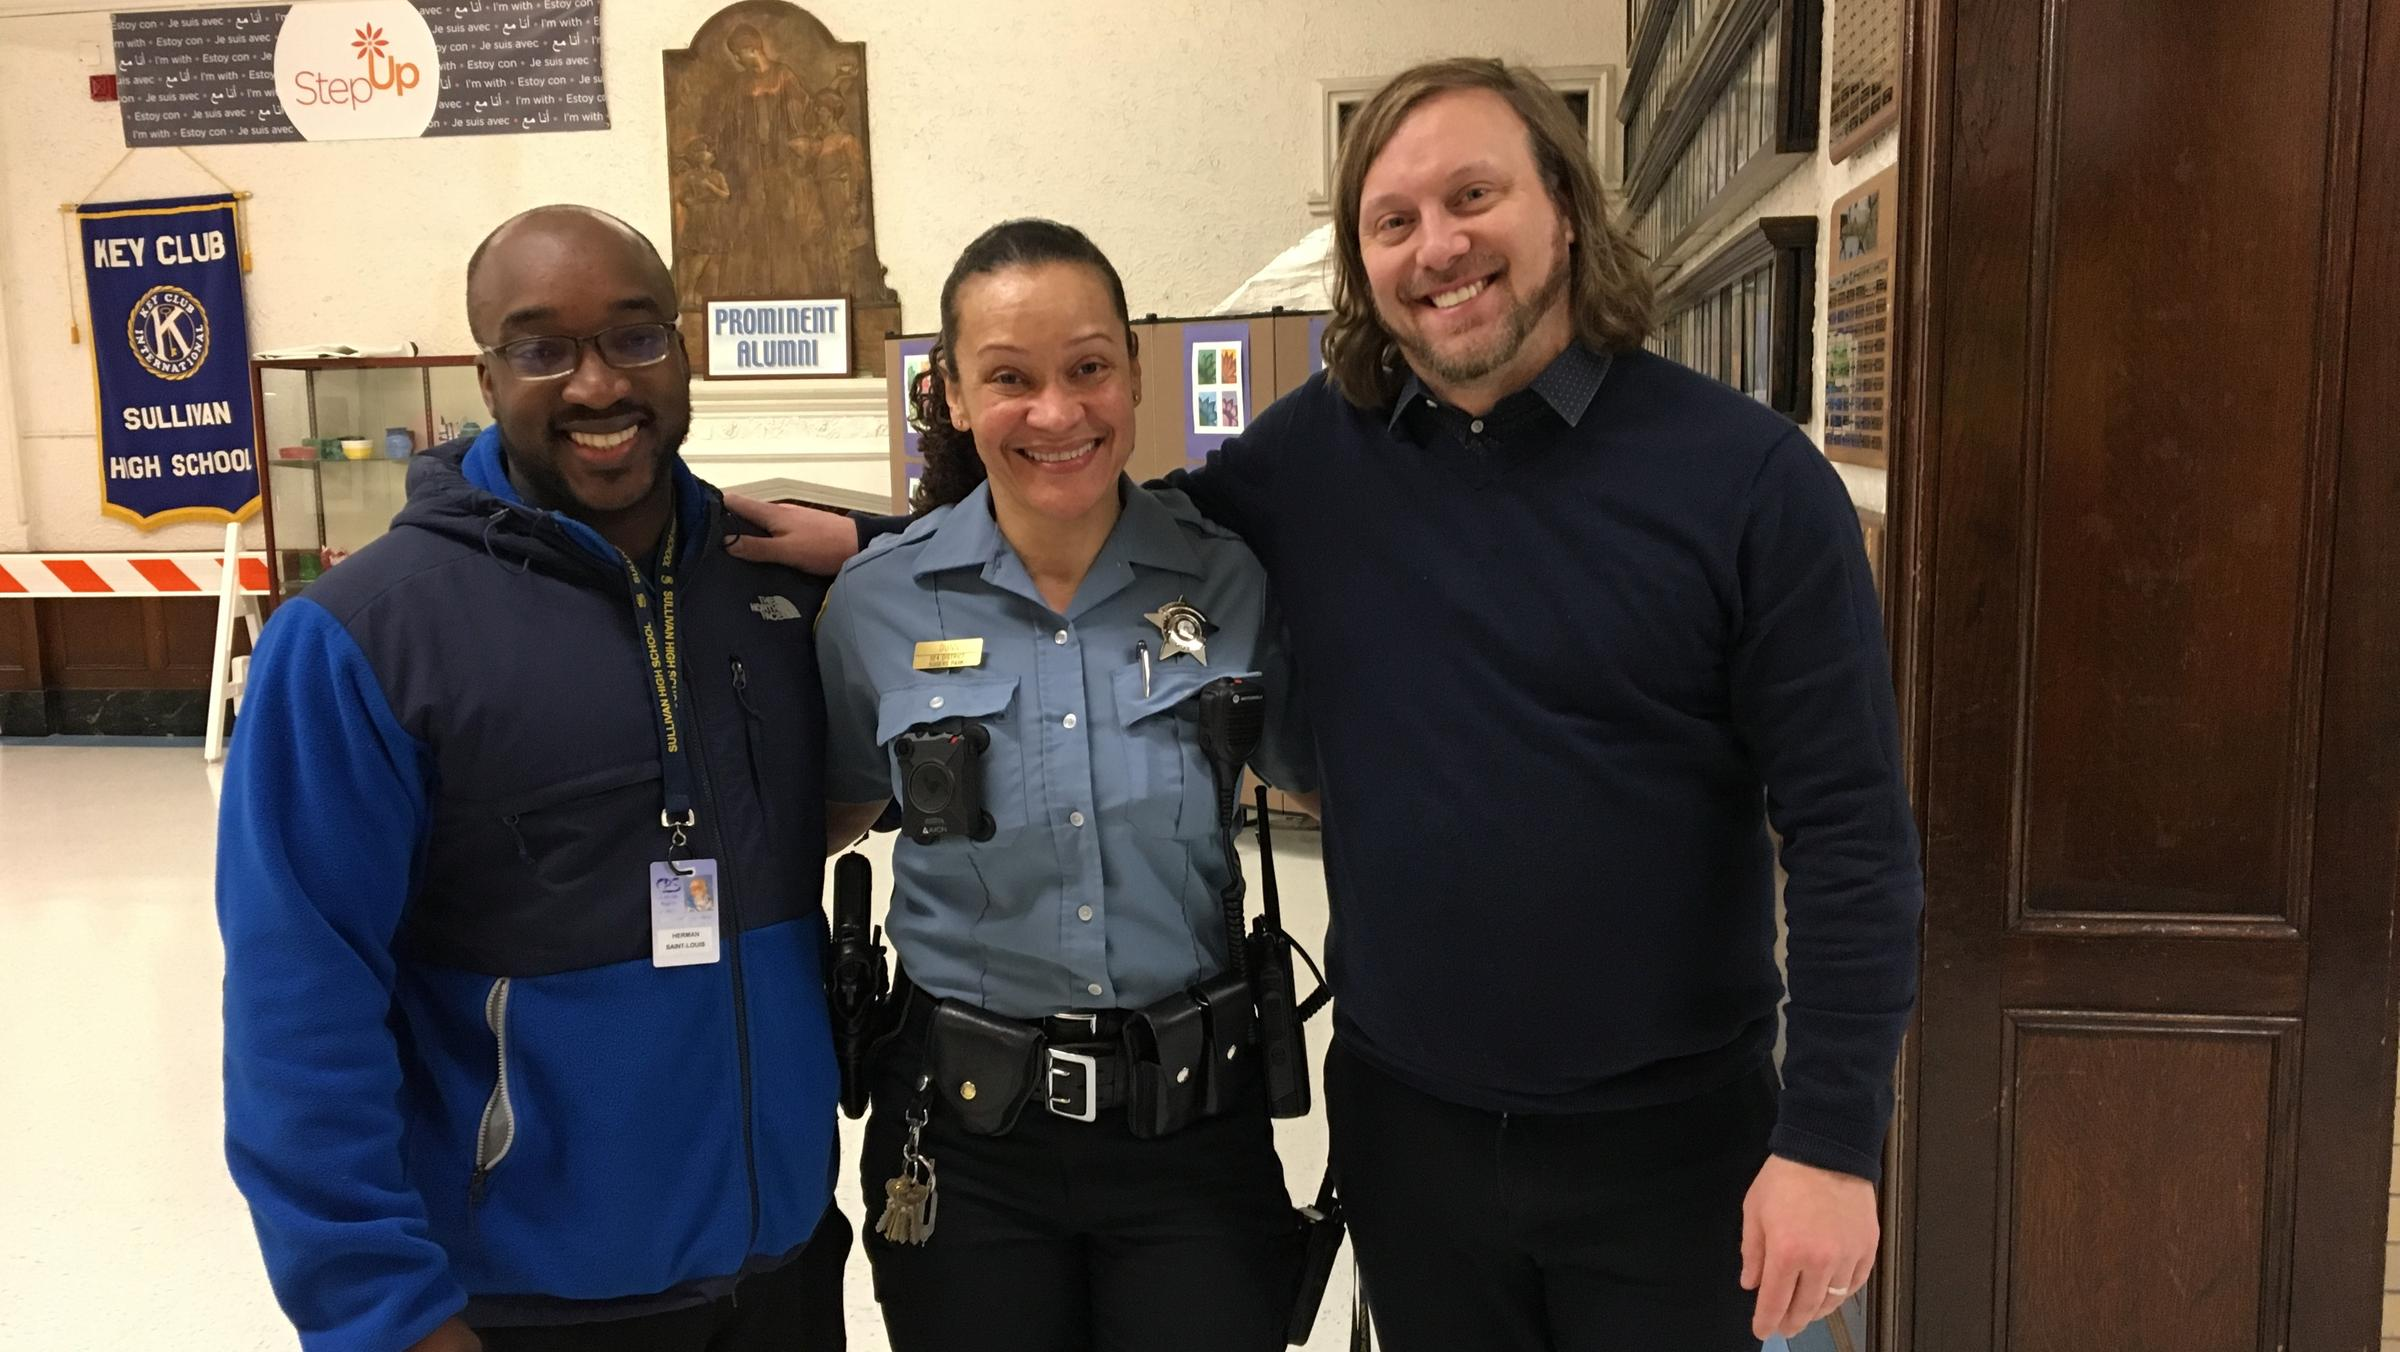 Helpful or Harmful: The Role of School Resource Officers